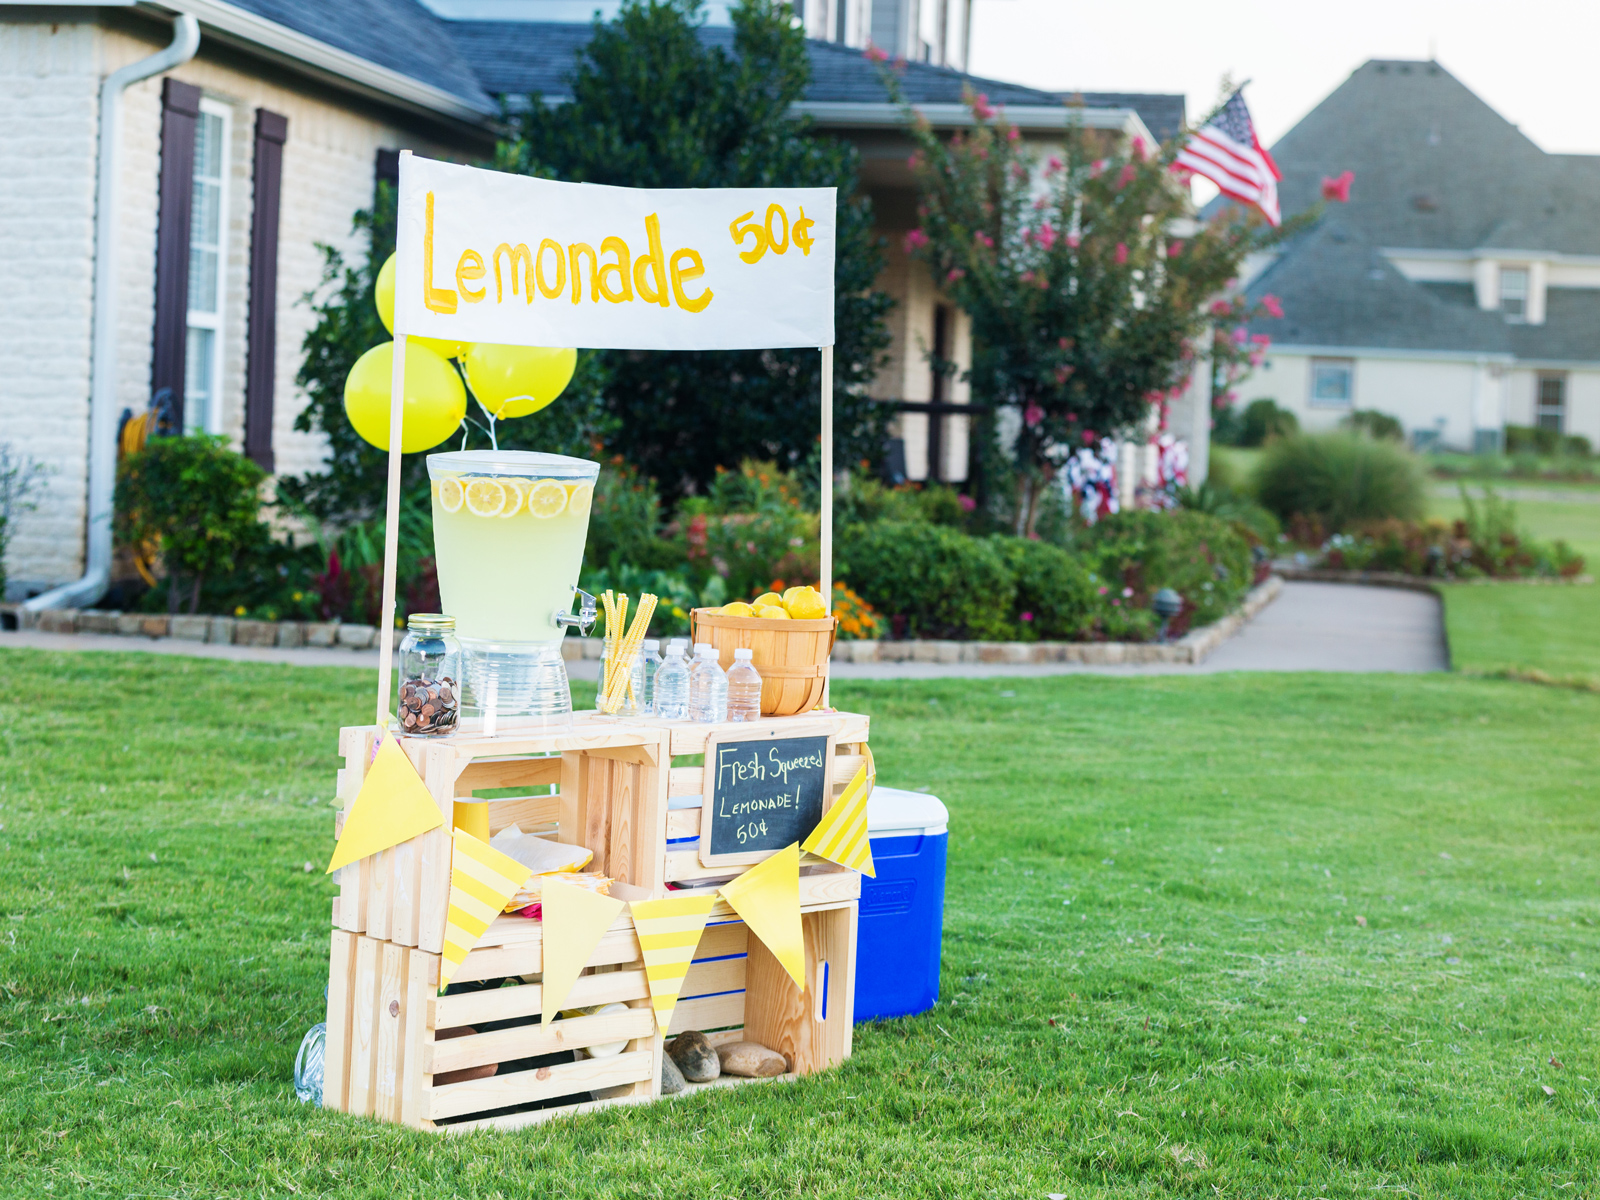 country-time-lemonade-permit-FT-BLOG0619.jpg